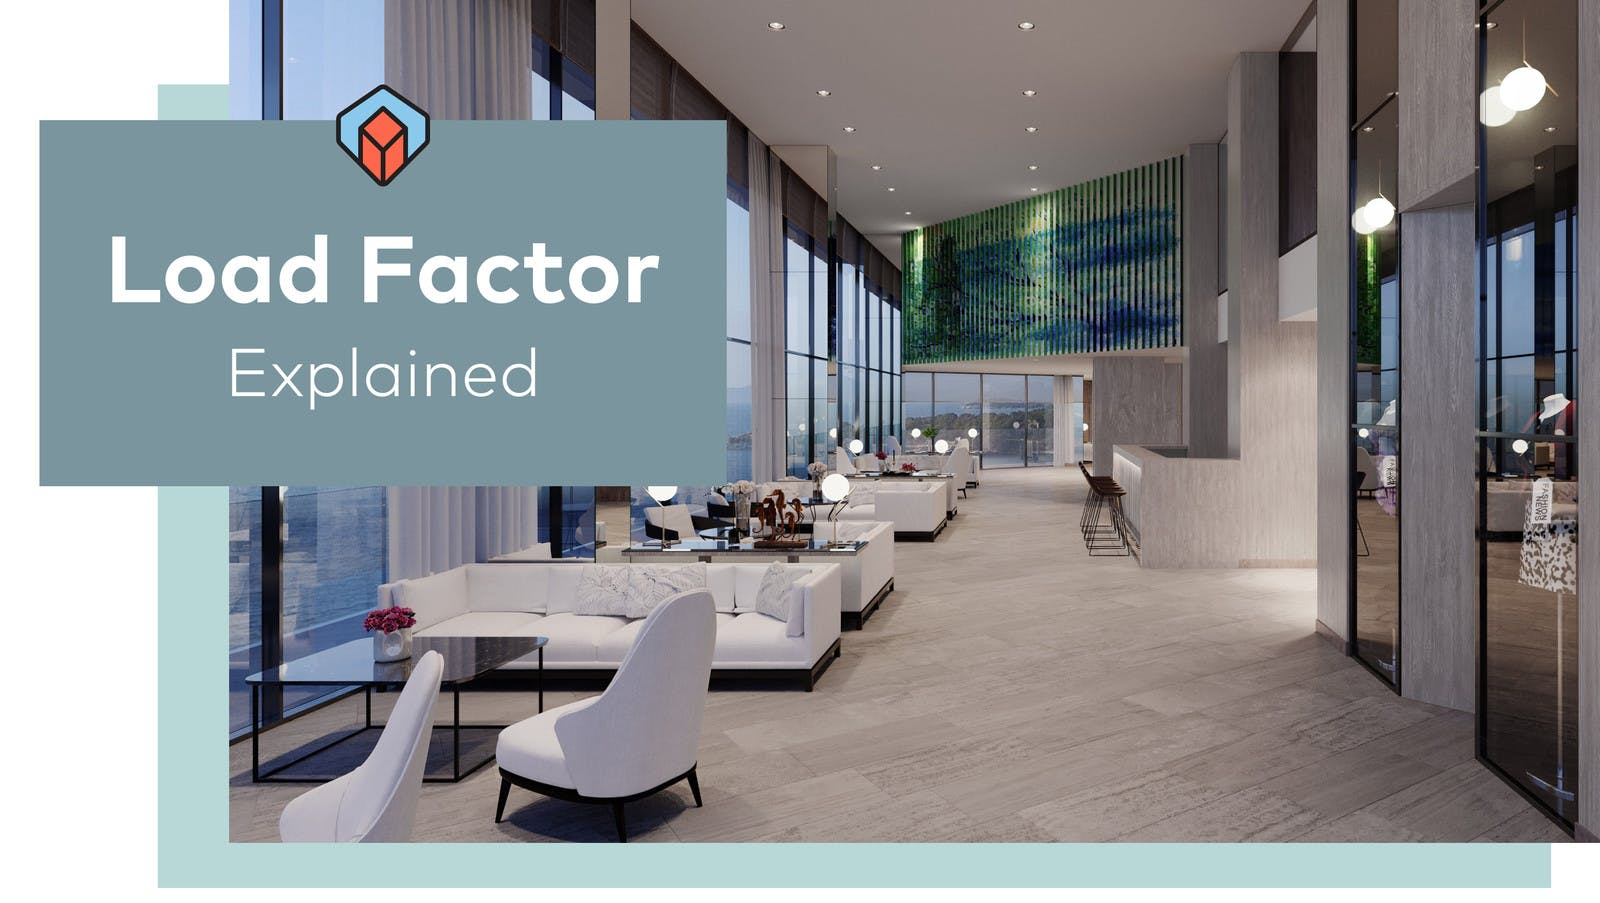 Load Factor Explained - Open Concept Meeting and Office Space Lobby